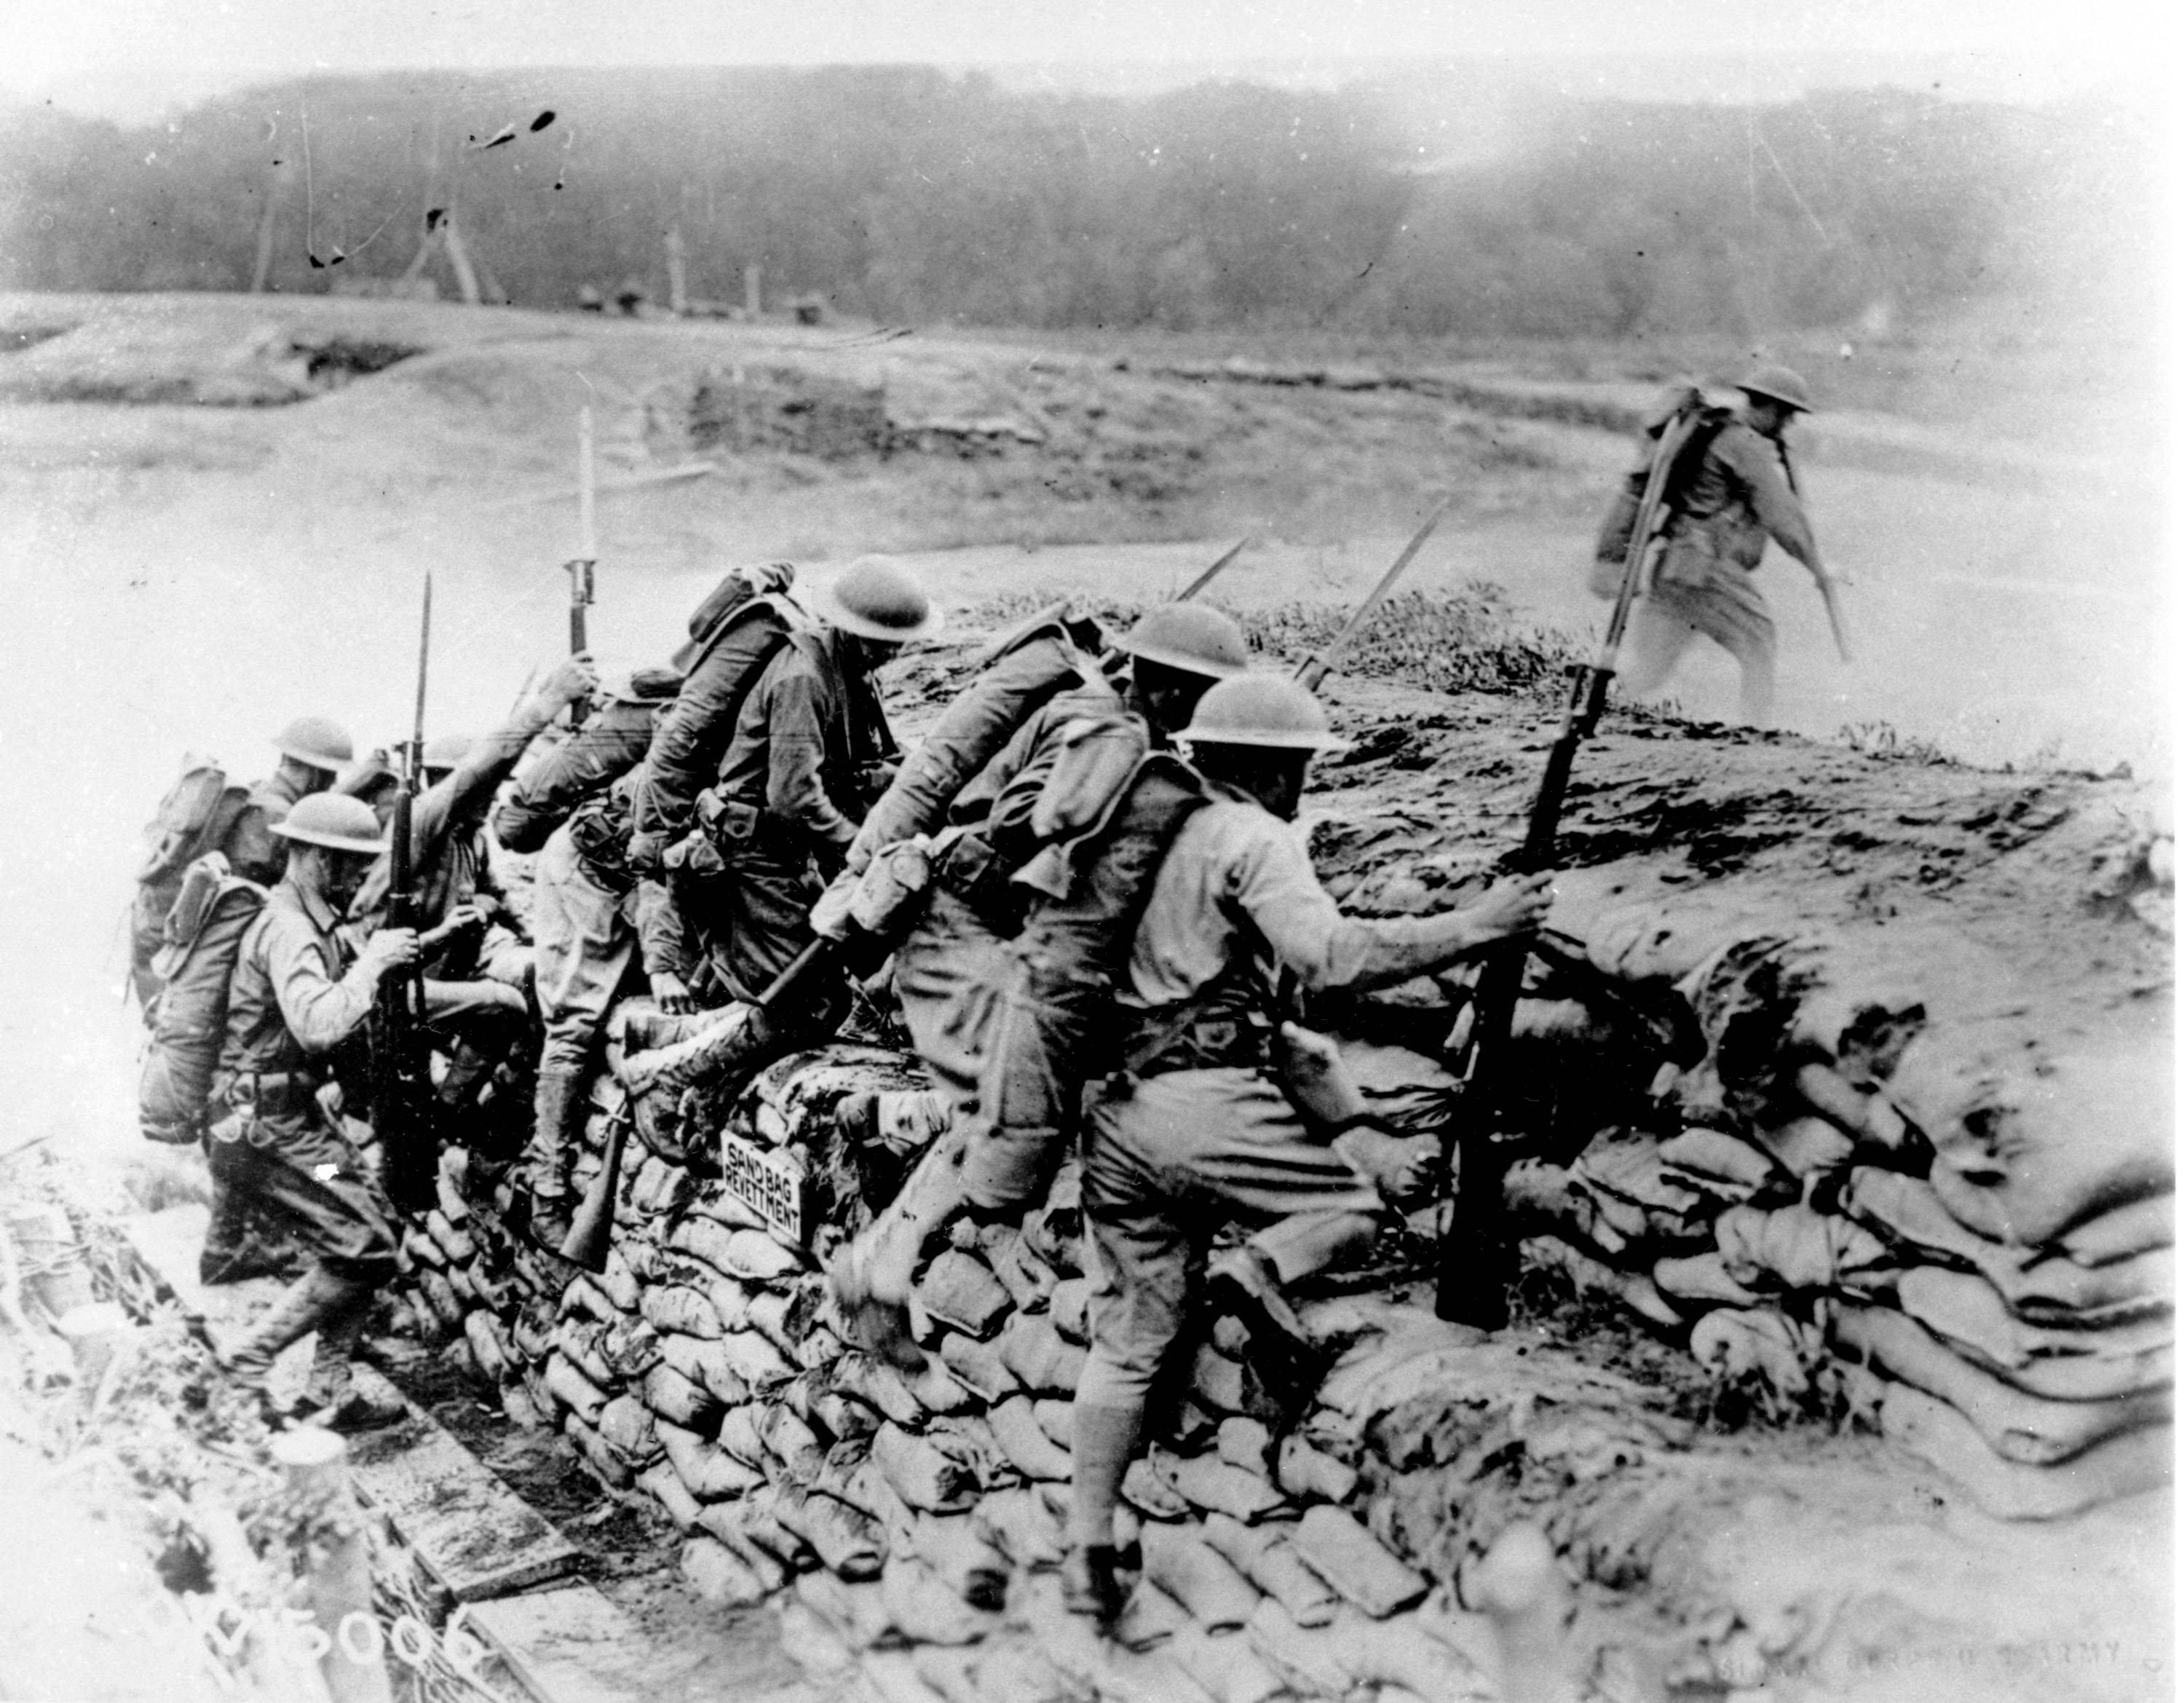 89 OF 100: In this 1918 file photo, American troops carrying guns with fixed bayonets climb over a sandbag revetment in France during World War I.